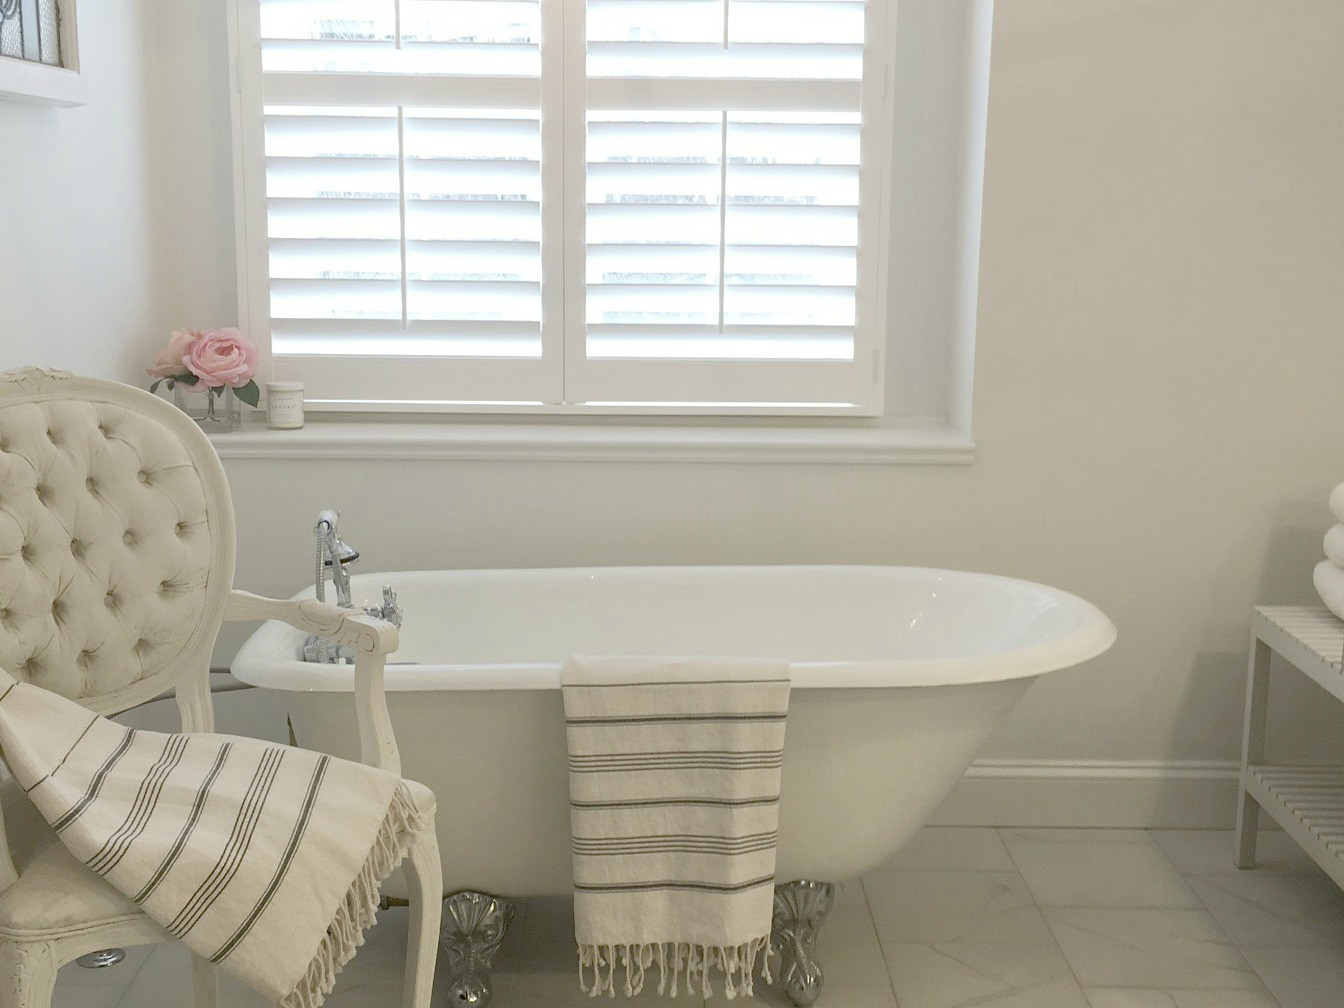 Clawfoot Tub in Master Bathroom in Chicagoland fixer upper by Hello Lovely Studio. Come see renovation photos in Before & After: My Home Renovation.